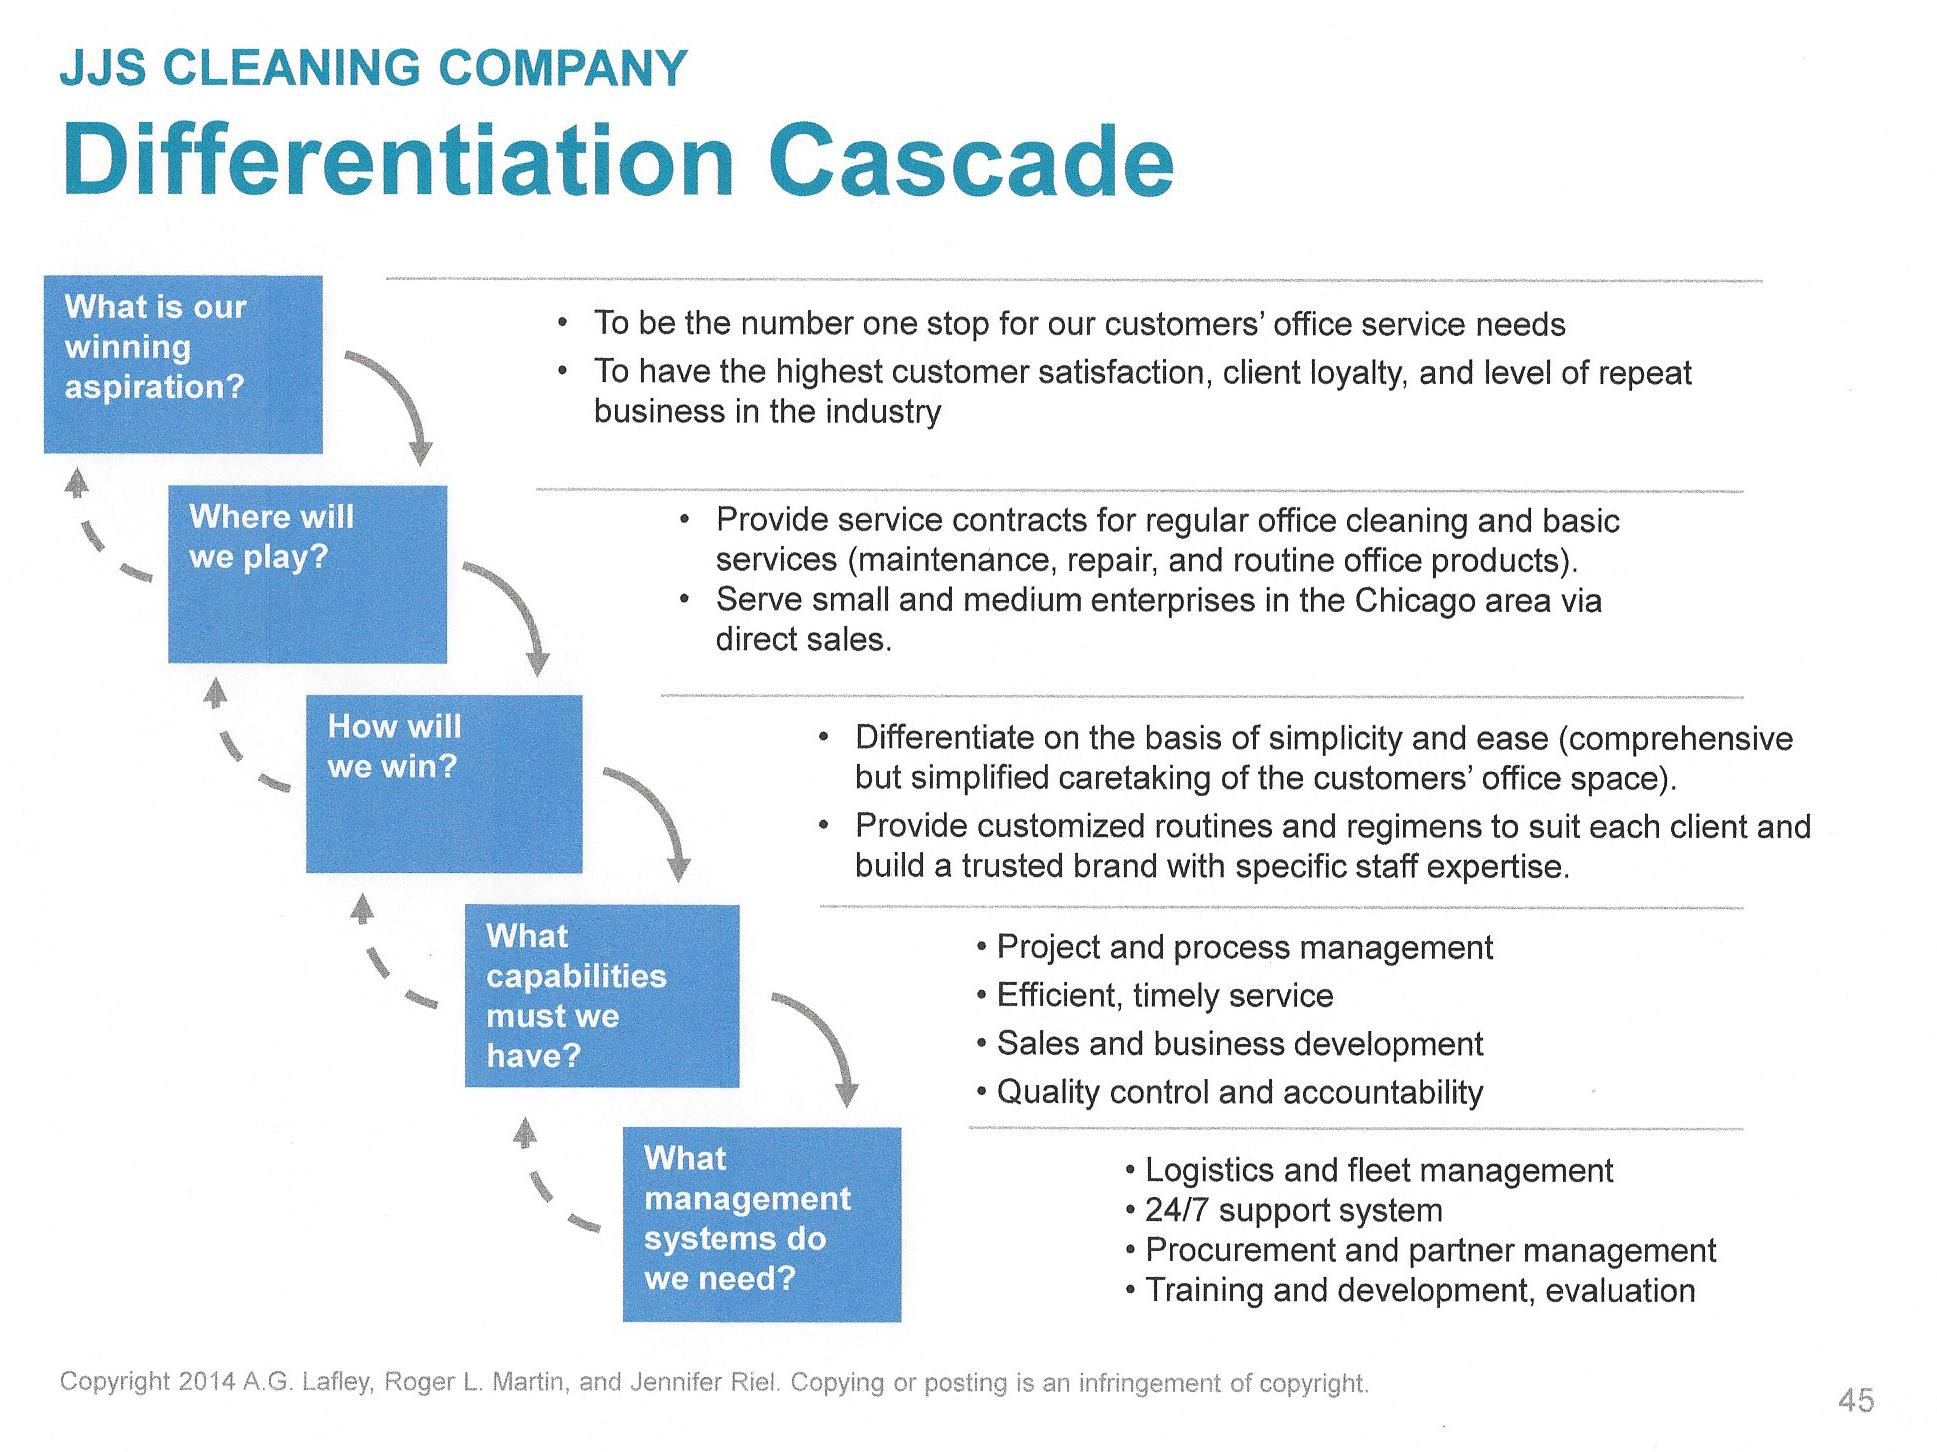 Play to Win - Differentiation Cascade - 5 Steps Example